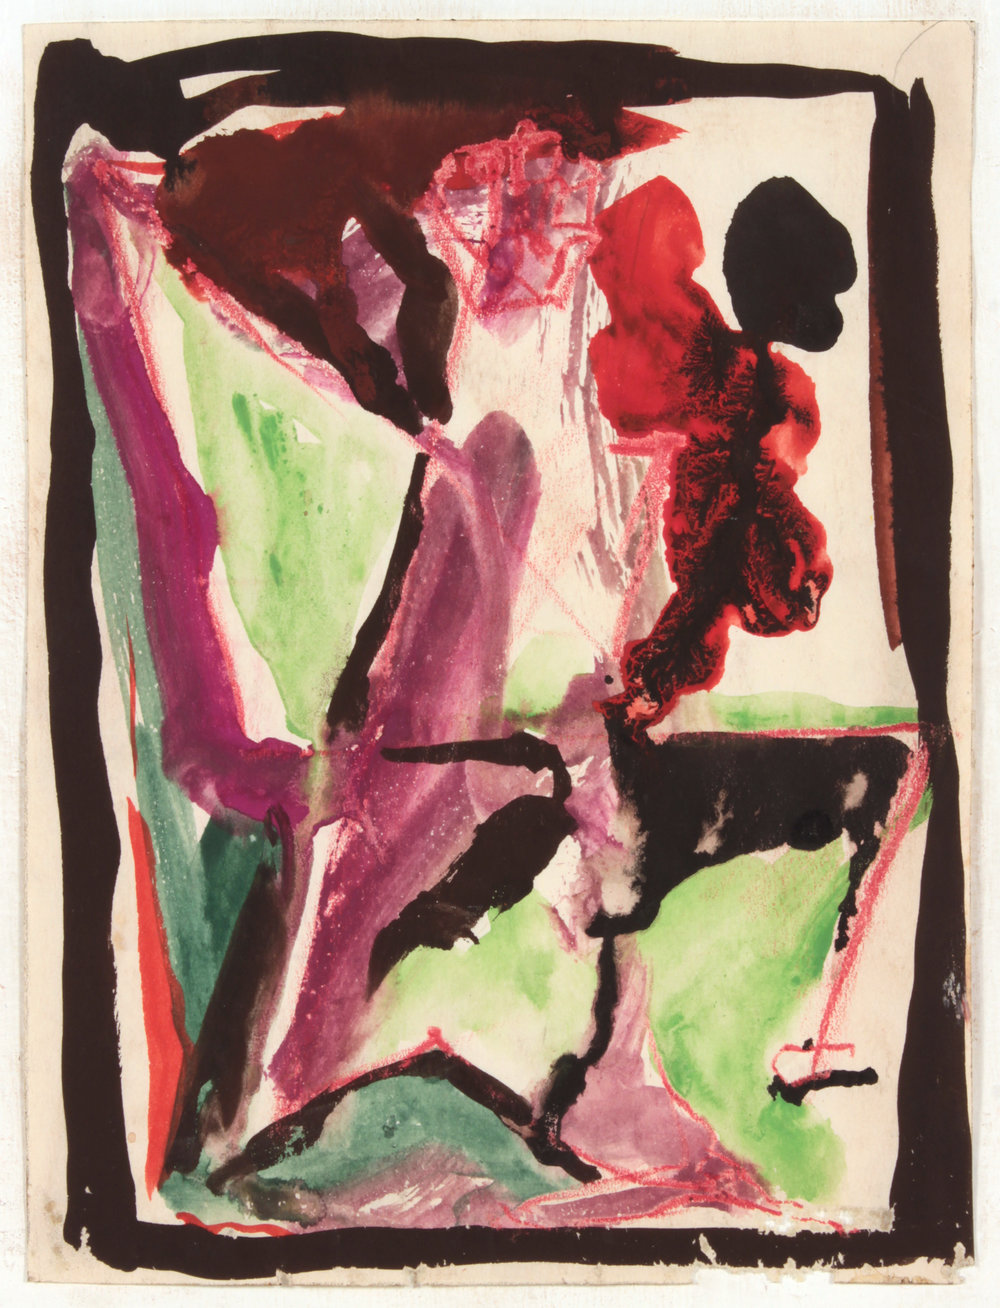 4. 1946-47 c, NT (Class Exercise 2_ Seated Abstract_Purple, Green, Red and Black), Wash and Ink on Paper, 7.875x5.9375, PPS 1461.JPG